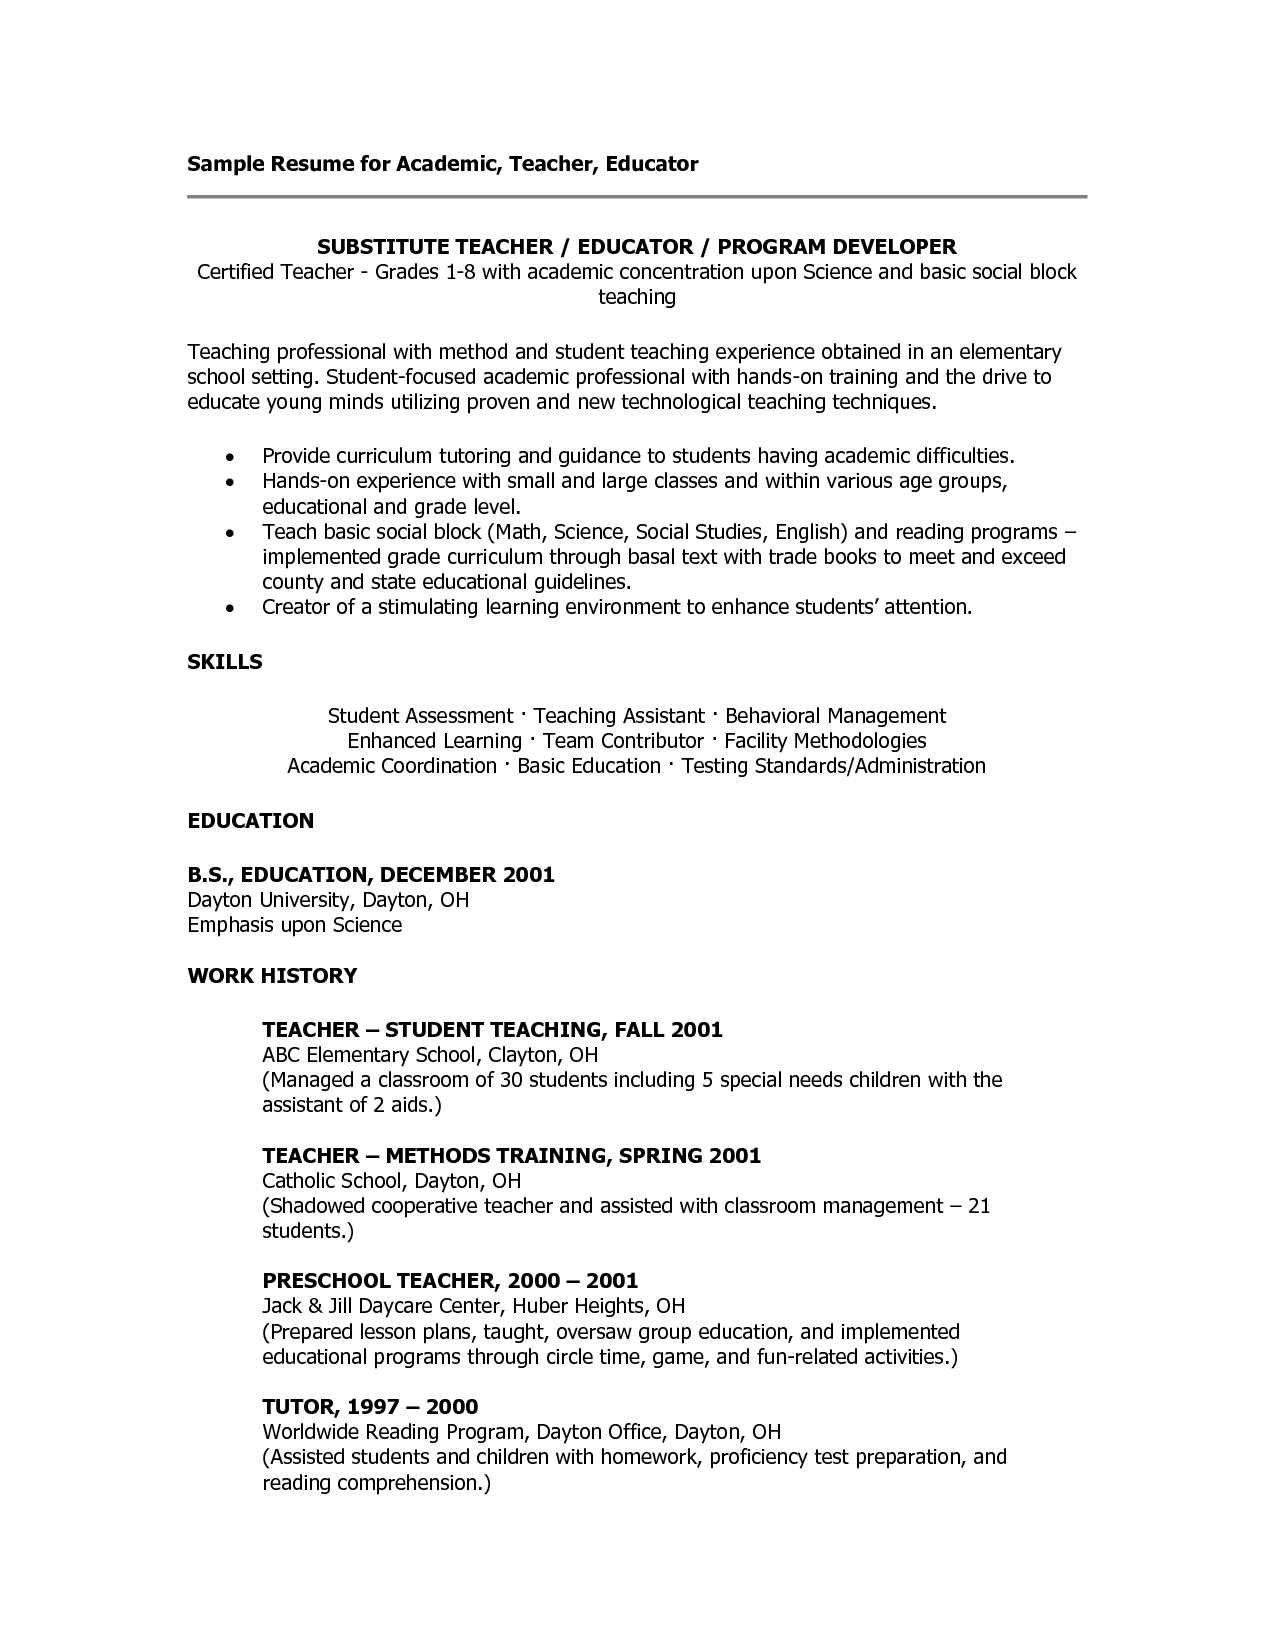 Elegant Sample Teacher Resumes | Substitute Teacher Resume Regarding Resume Substitute Teacher